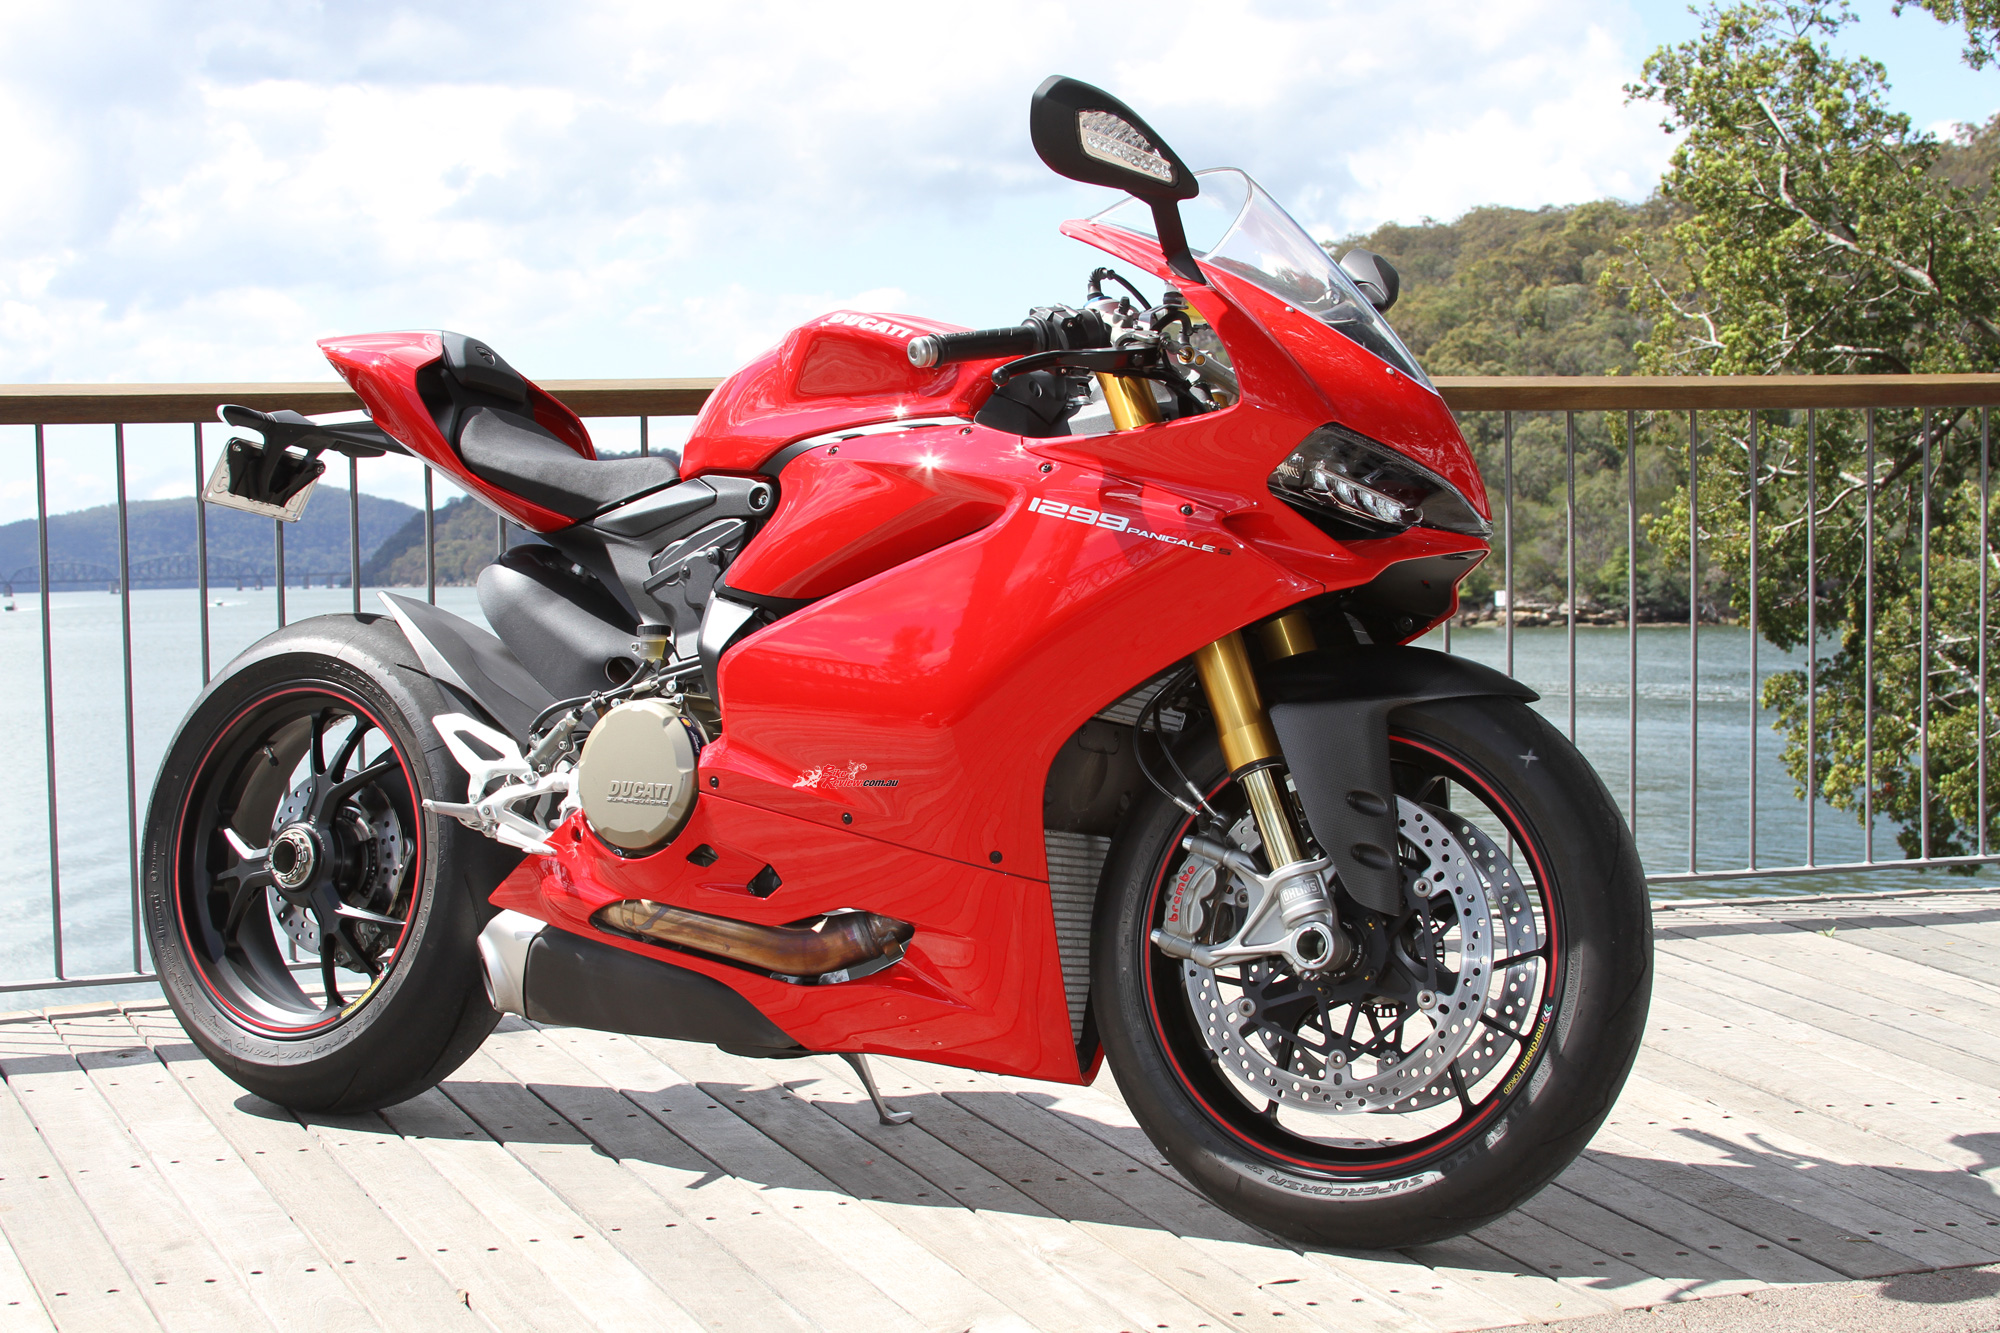 2015 Yamaha Motorcycles >> Review: 2015 Ducati Panigale 1299 S - Bike Review